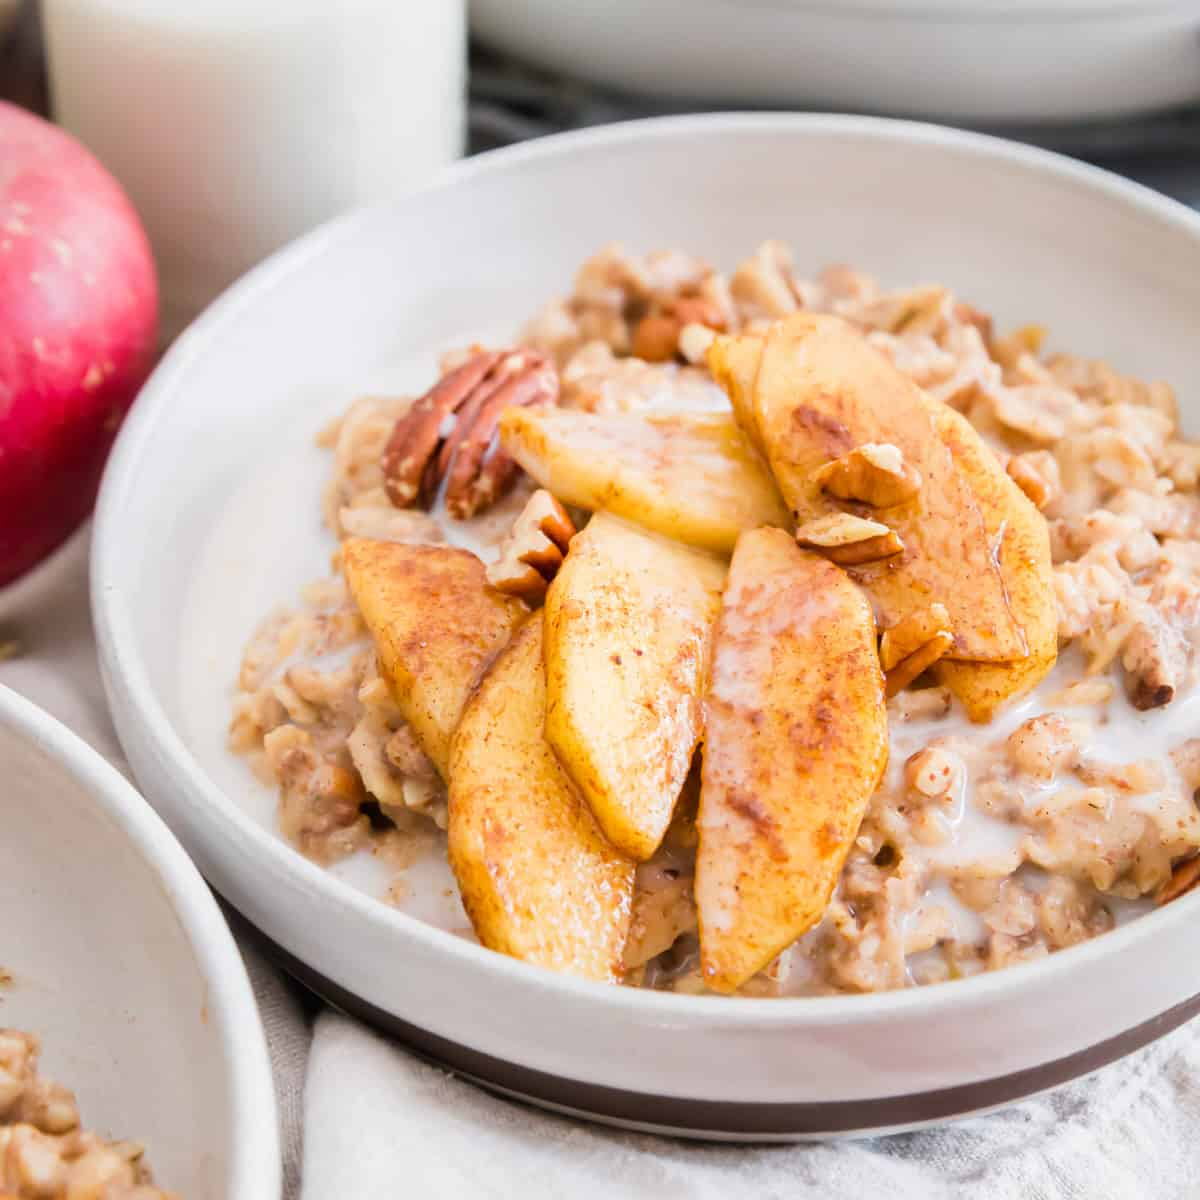 Apple cinnamon oatmeal made with gluten-free oats, chia seeds and flaxseed is a healthy yet creamy and decadent tasting fall breakfast.